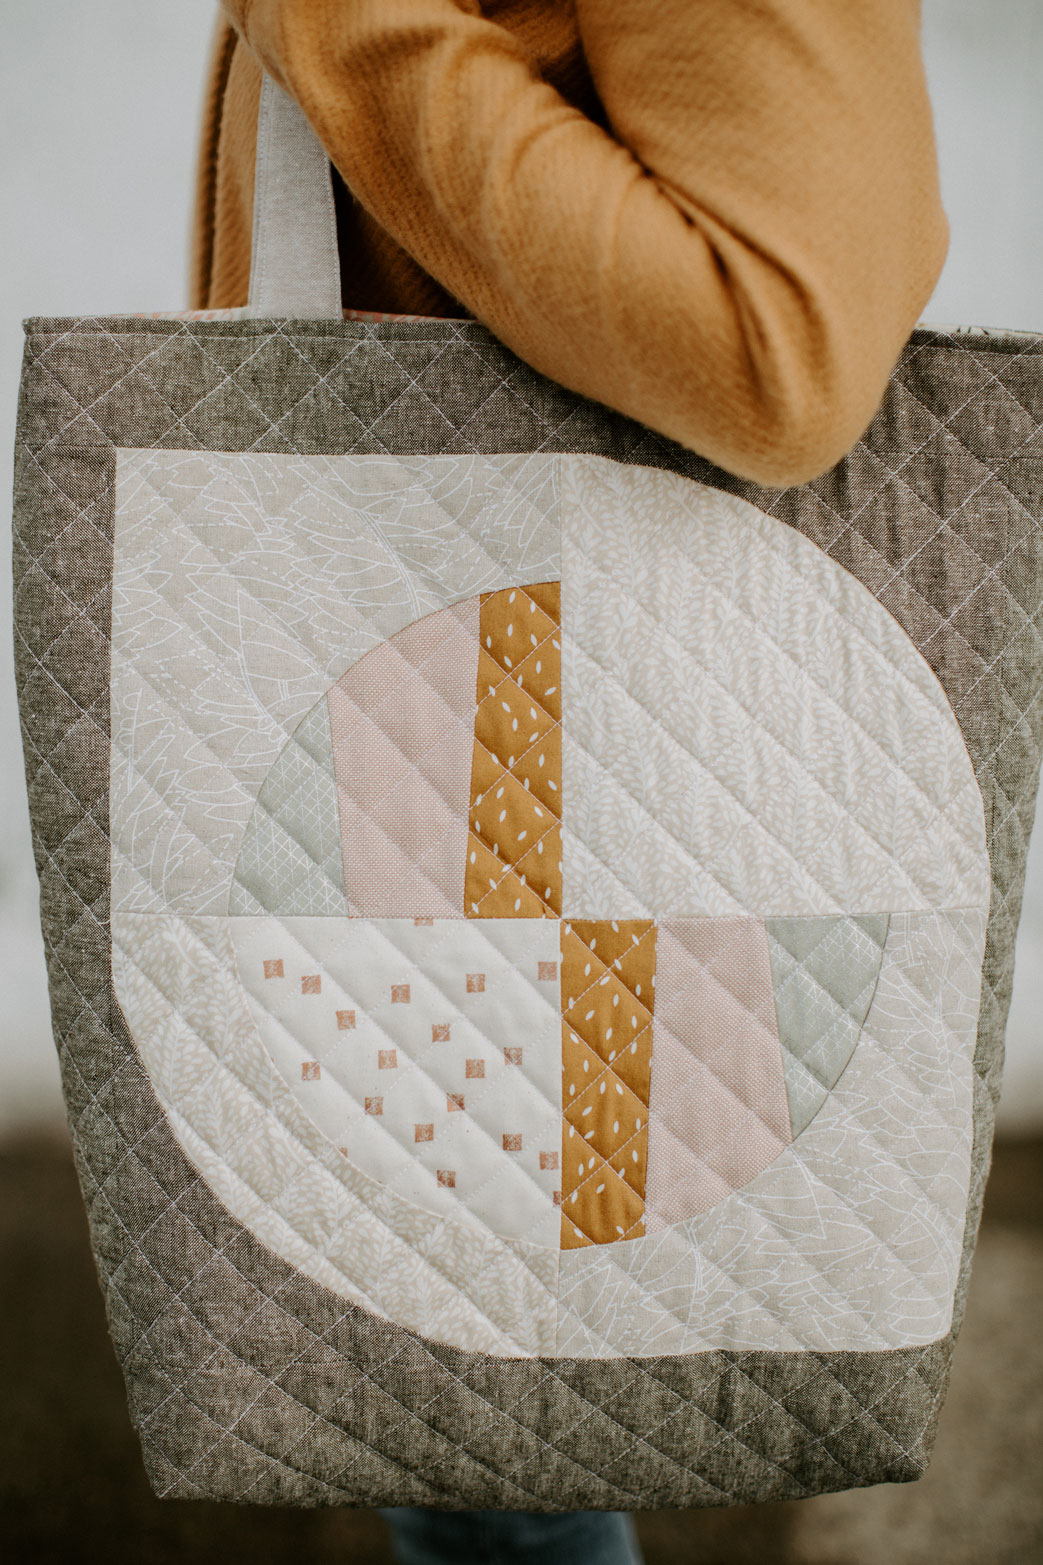 This FREE quilted tote bag tutorial shows step by step how to create a large tote bag using the Modern Fans quilt block pattern. suzyquilts.com #totebagtutorial